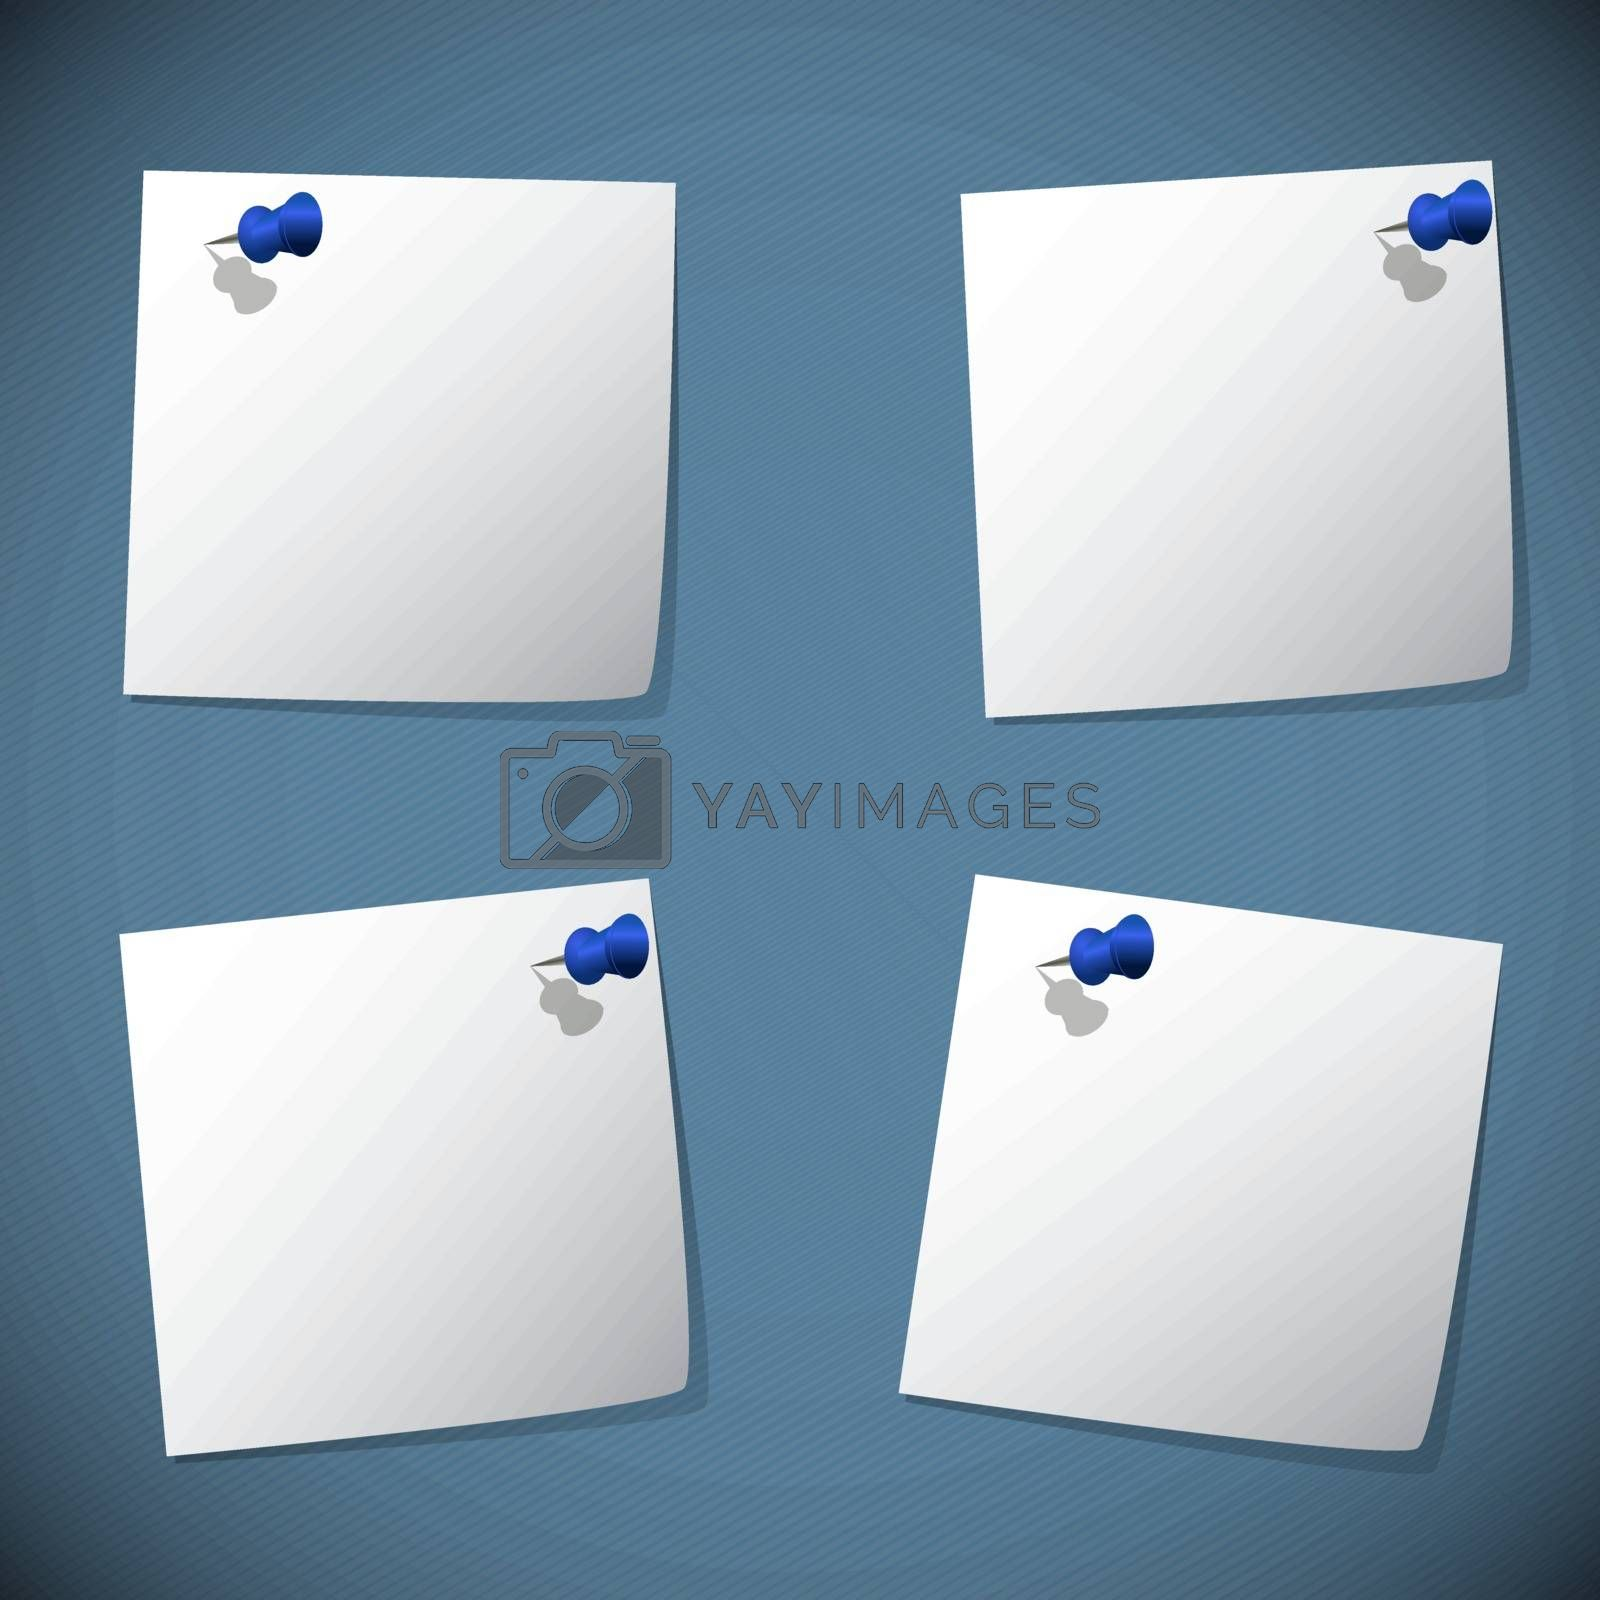 Square note papers with blue pin, stock vector